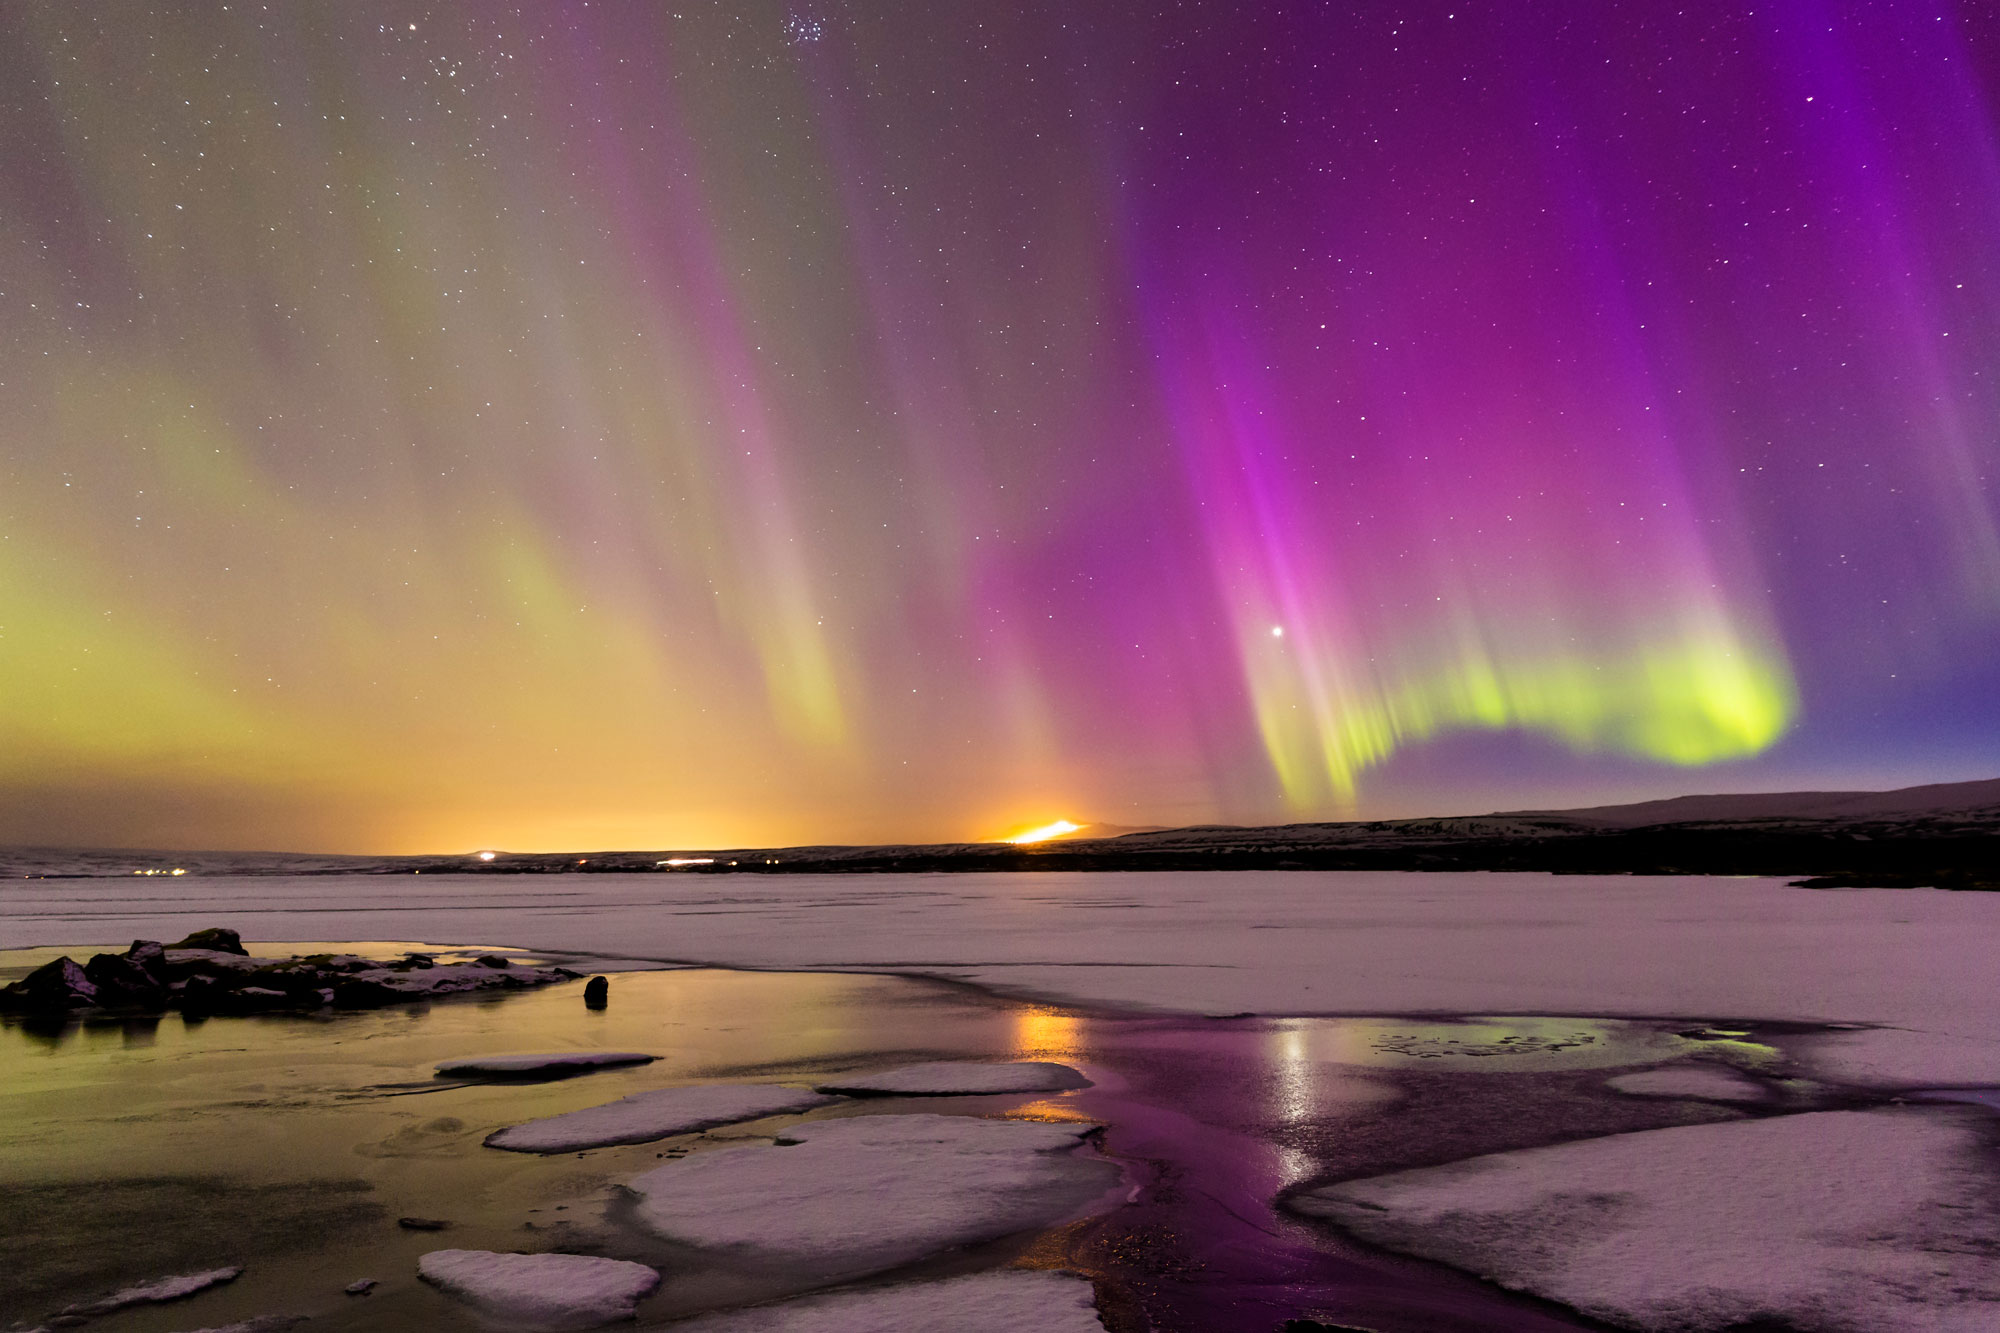 A huge solar storm created dazzling auroras at the National Park, lake Þingvallavatn, in Iceland on March 17, 2015 in Iceland. GETTY IMAGES/Bragi Kort / Barcroft Media.